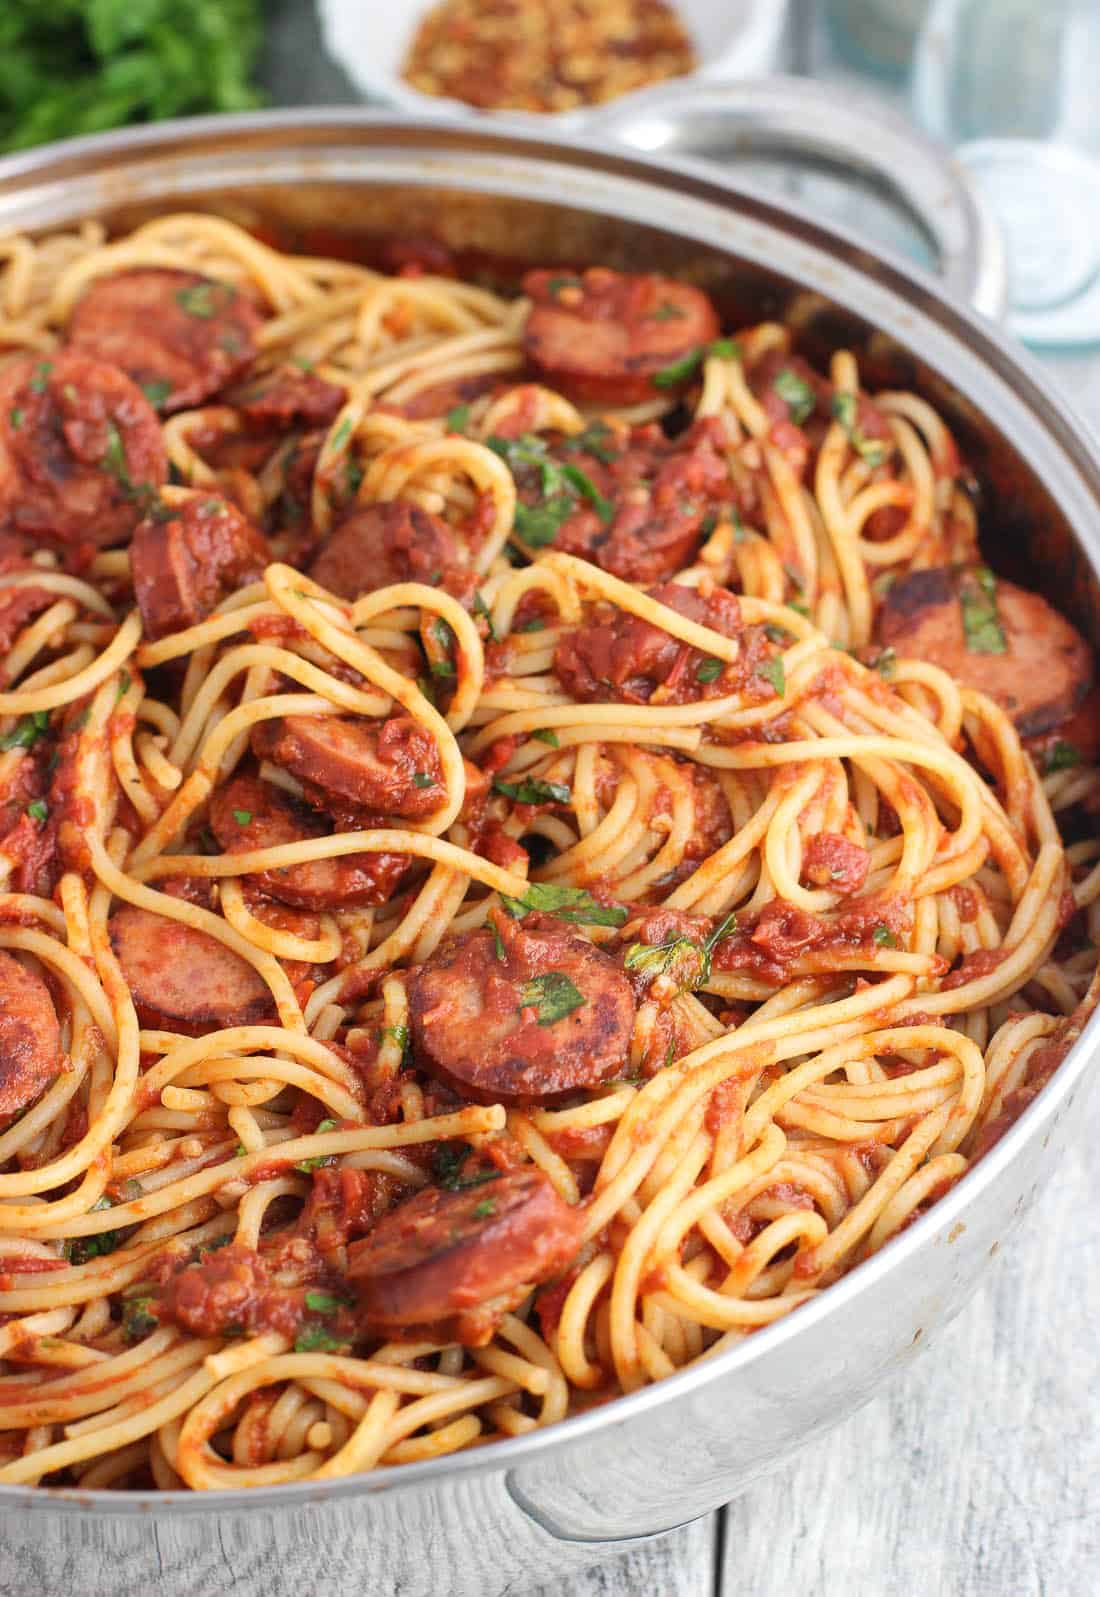 A large metal pan with taller sides filled with spaghetti, smoked sausage, and sauce ready to serve